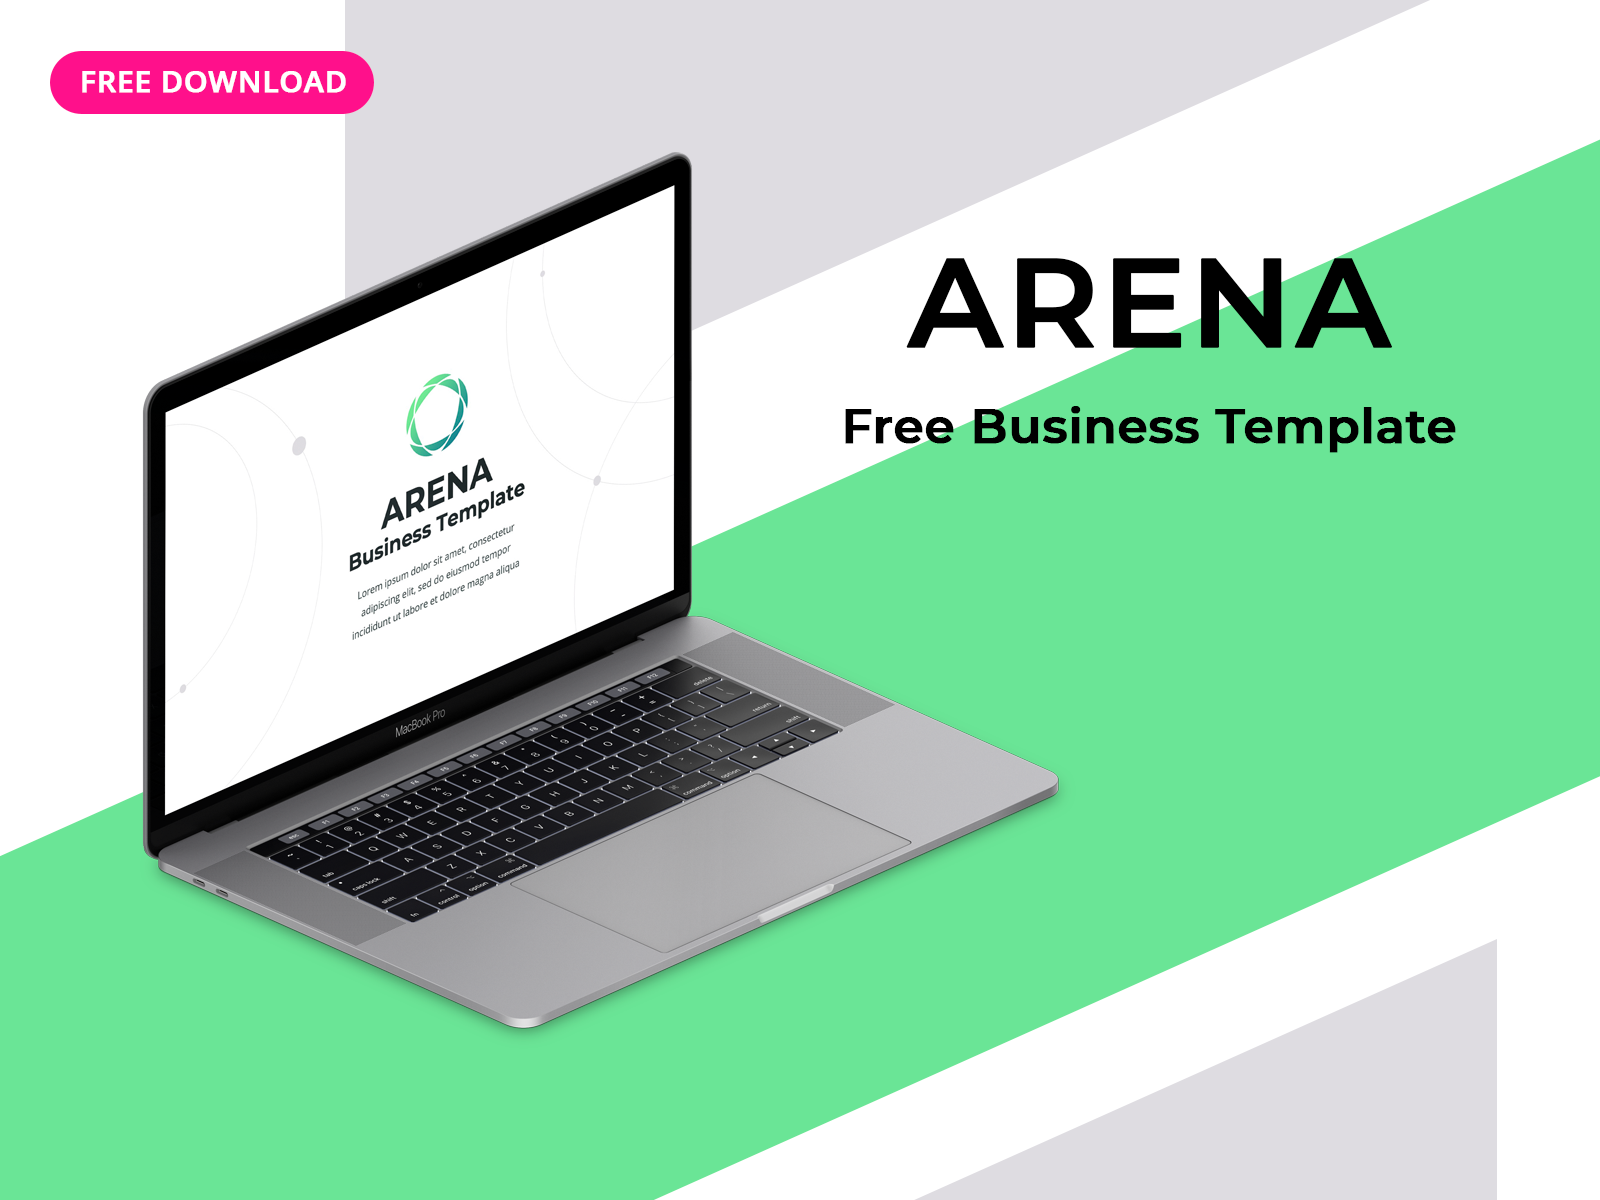 Free Business Template Arena For Powerpoint Keynote Uplabs